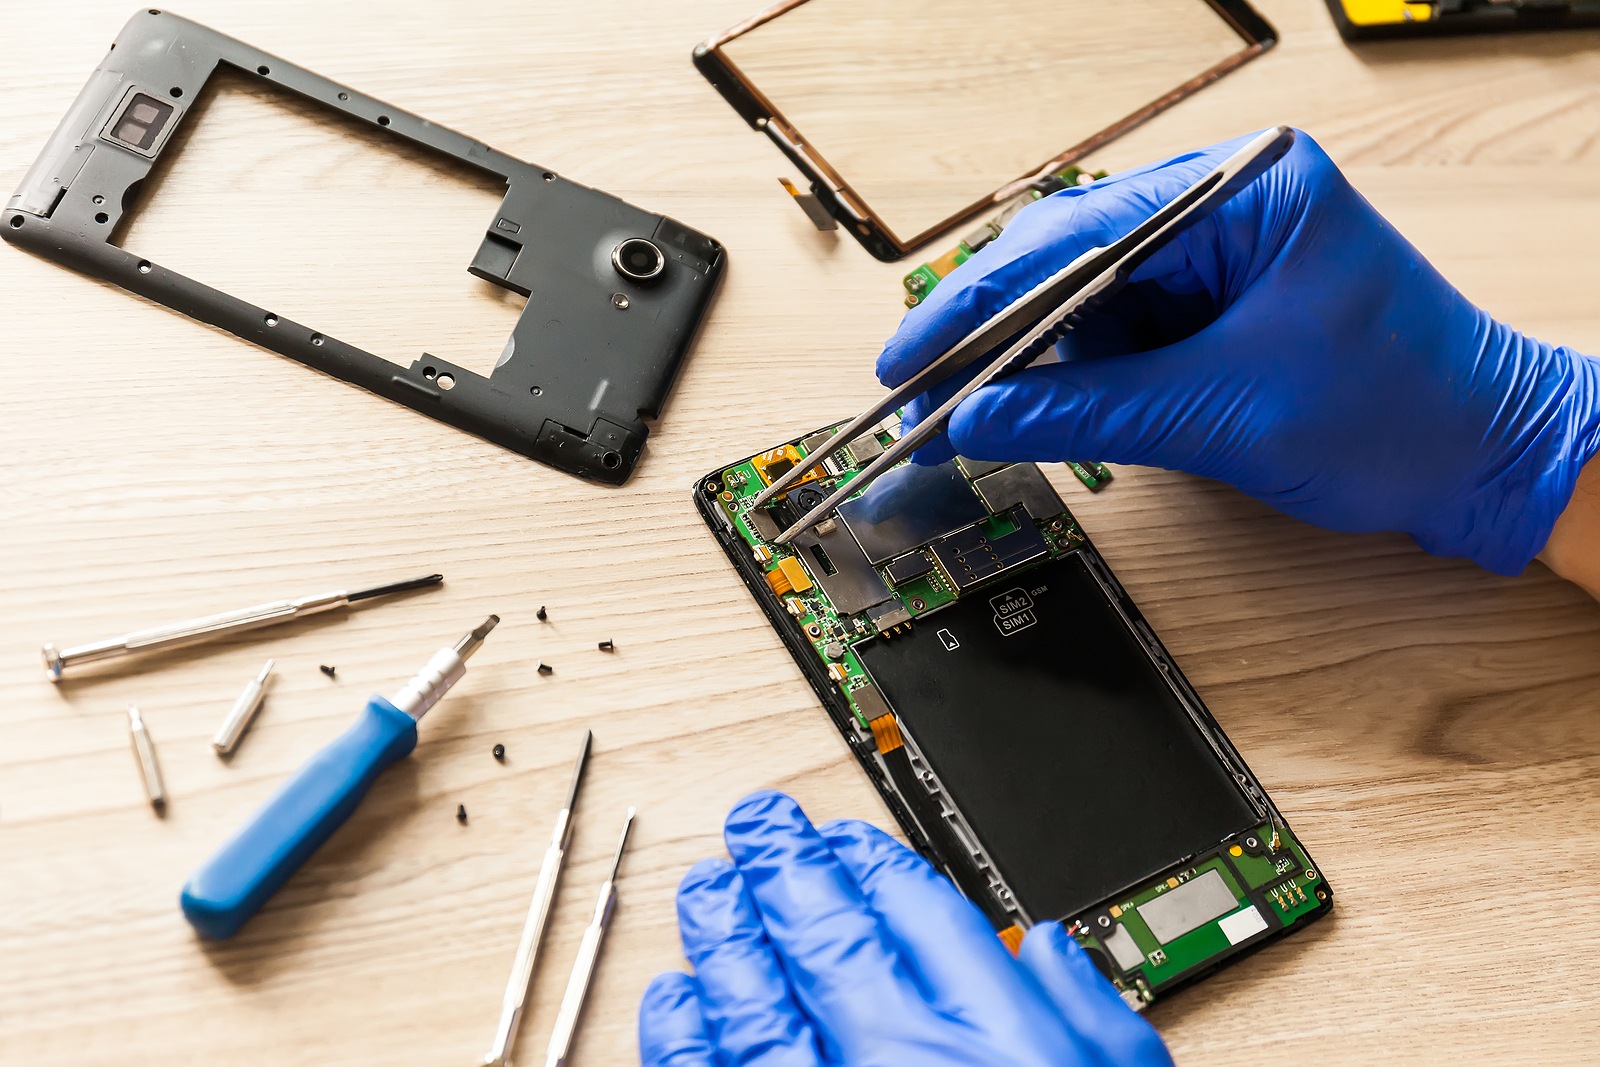 The technician repairing the smartphone's motherboard in the workshop on the table. Concept of computer hardware, mobile phone, electronic, repairing, upgrade and technology.